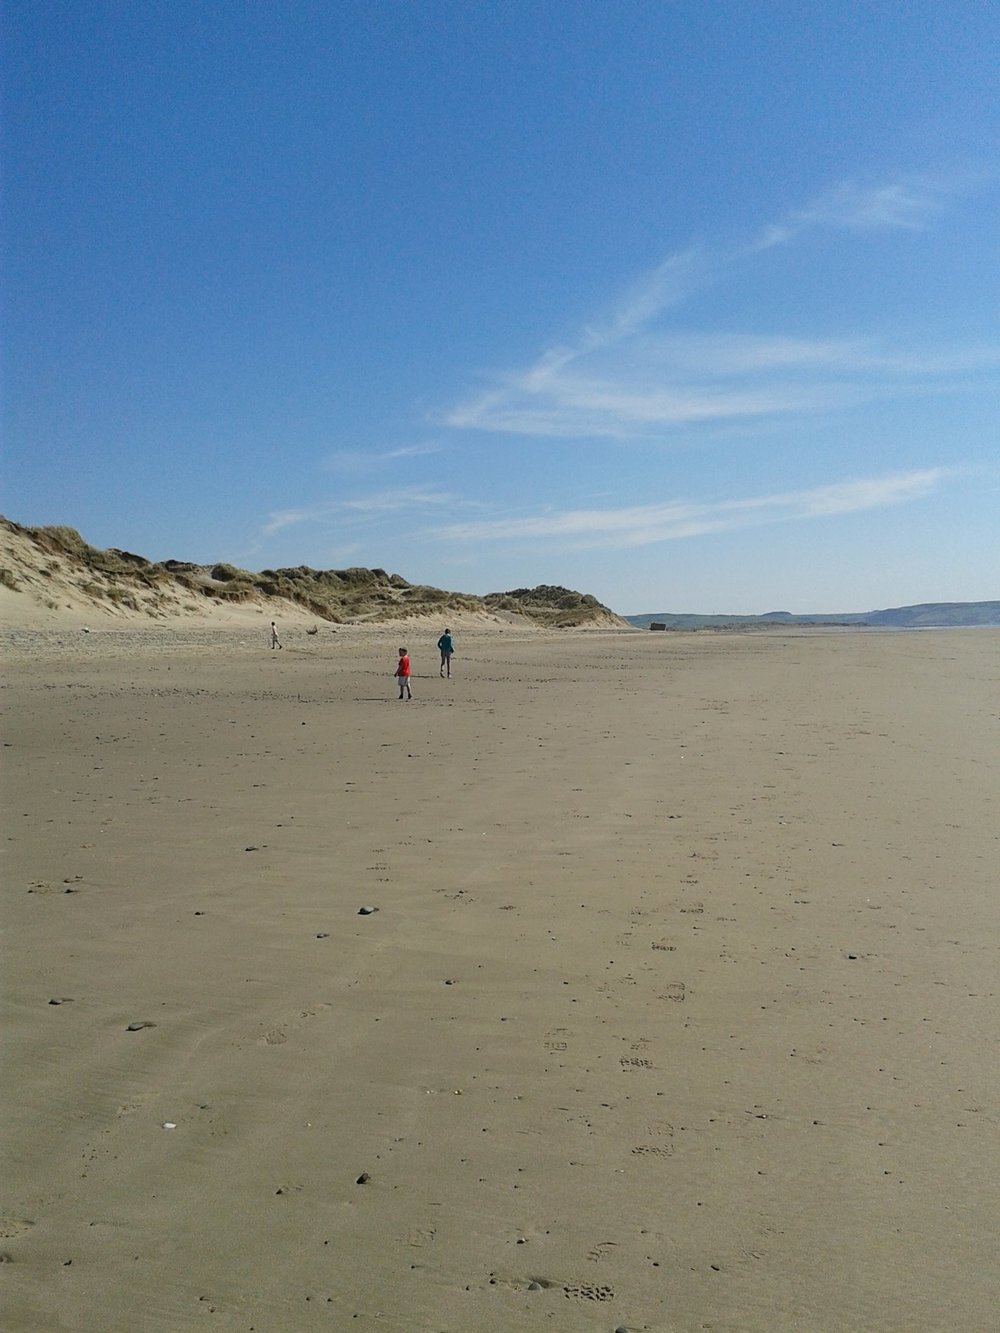 Aberdyfi Beach and dunes